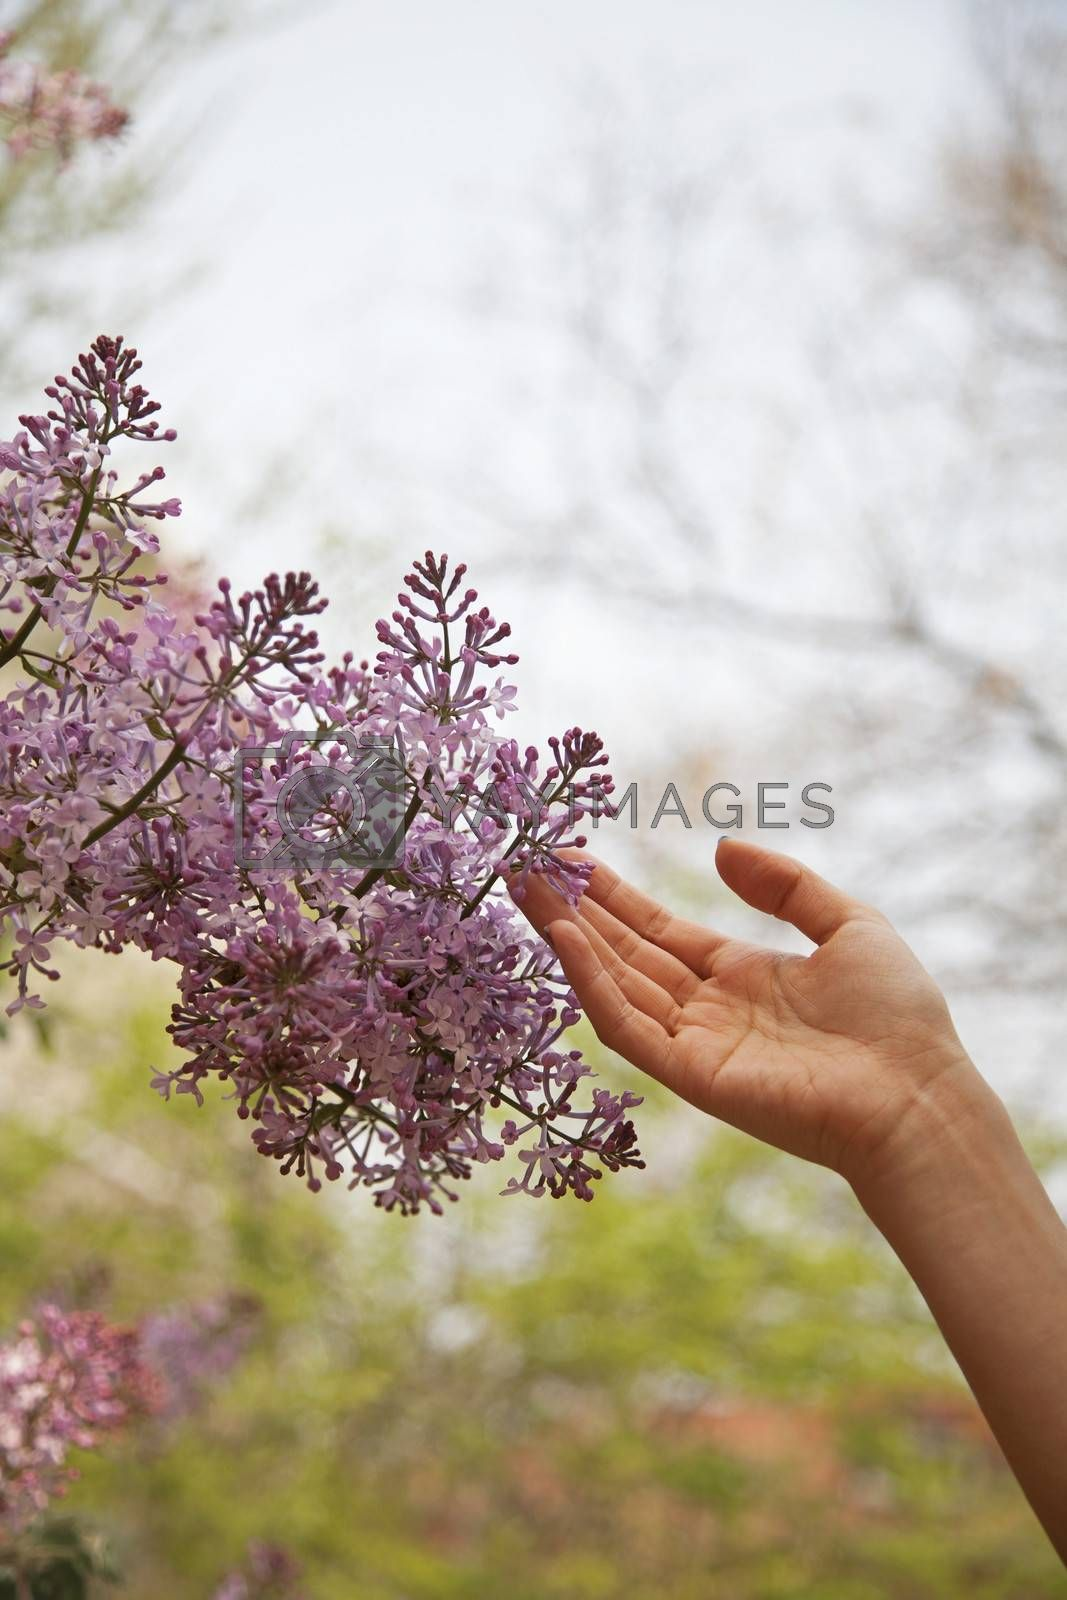 Close up of hand touching flower blossom, outside in the park in springtime